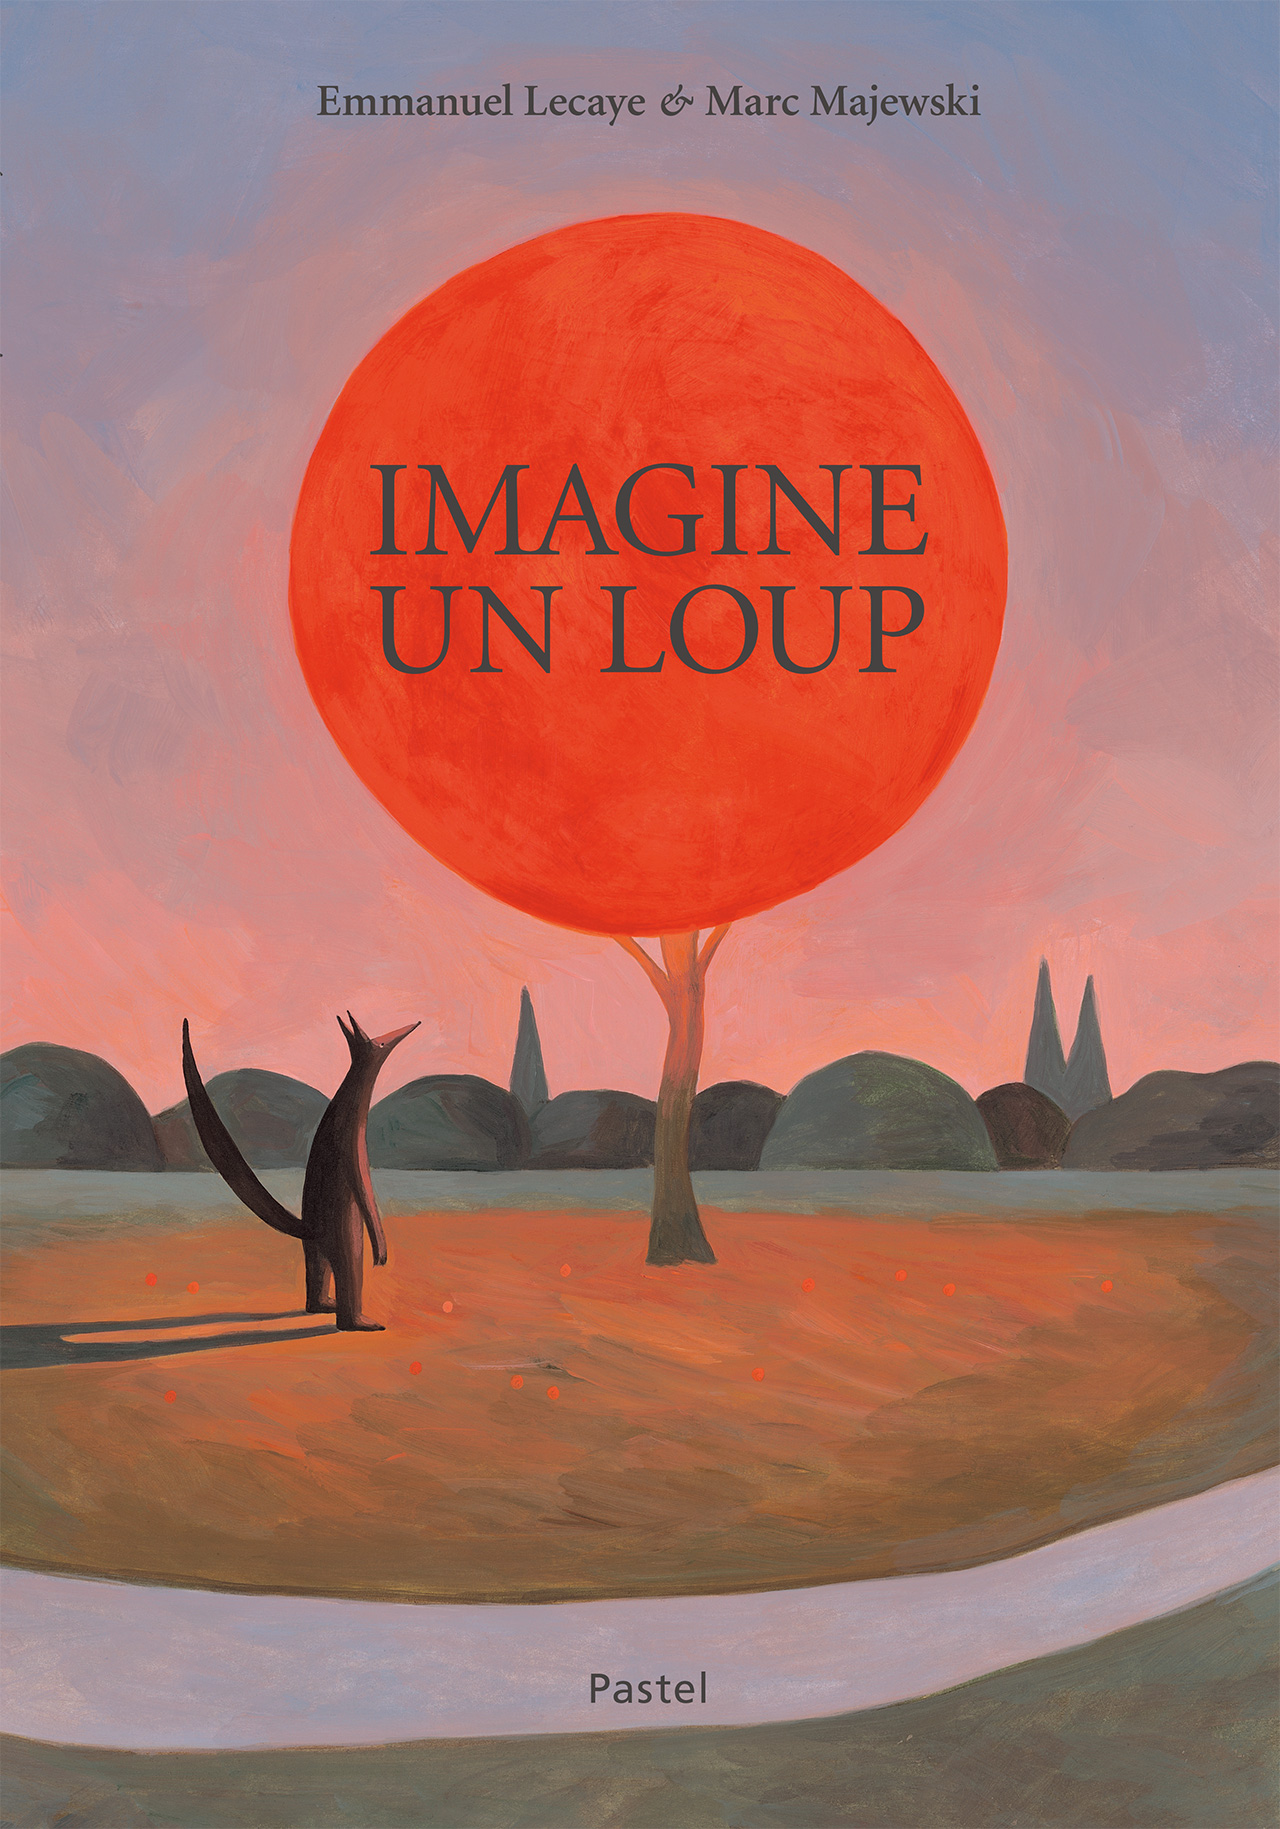 Cover of my upcoming book, Imagine un loup, written by Emmanuel Lecaye, published in October 2019 by Pastel (L'école des loisirs).